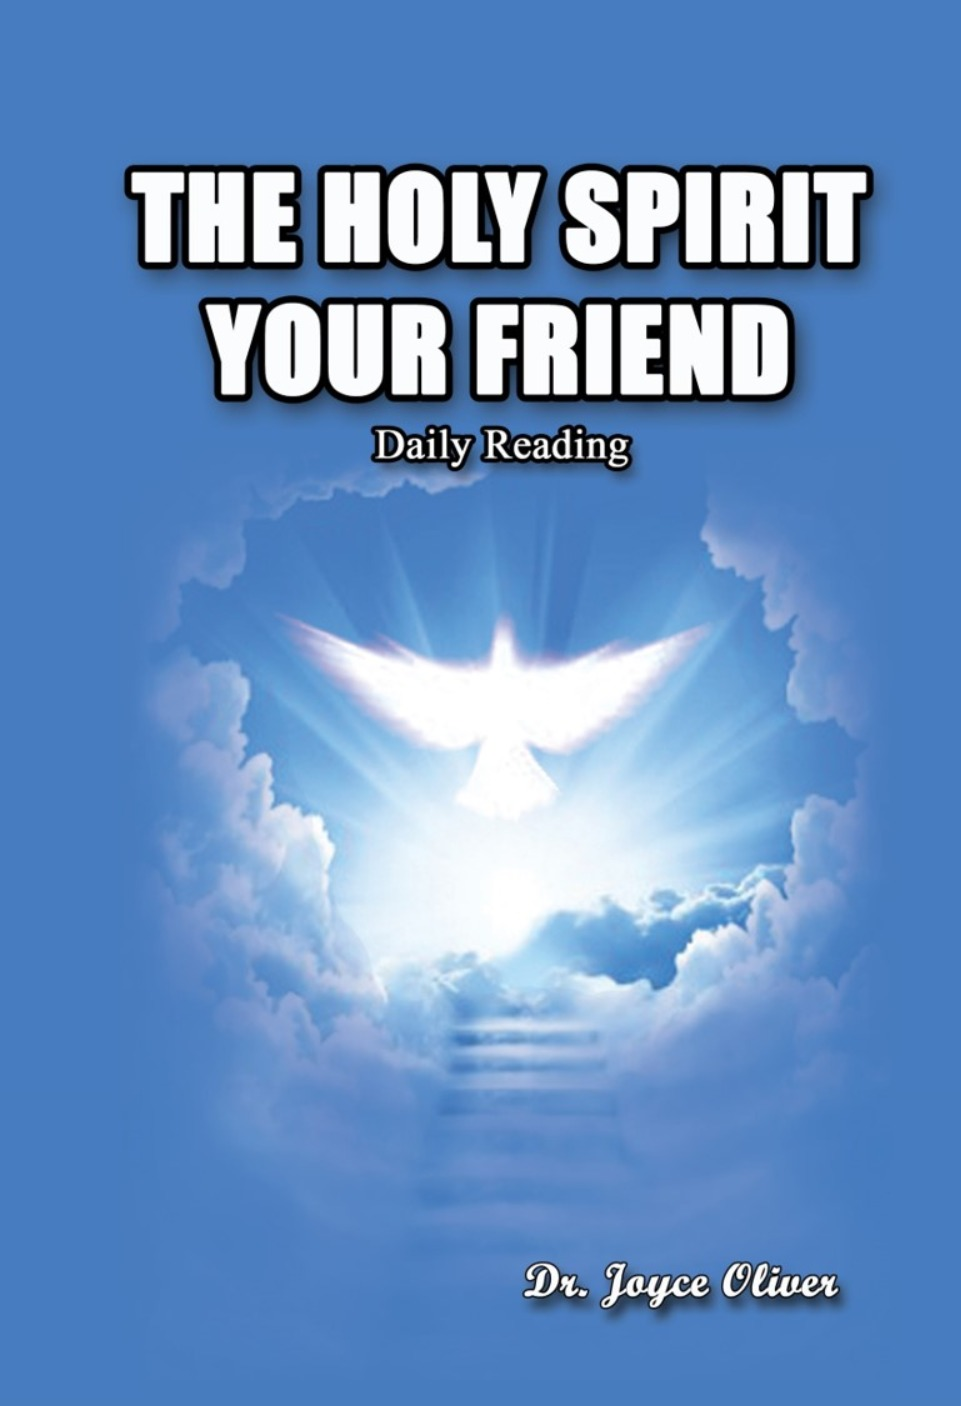 The Holy Spirit Your Friend - Daily Reading (Book)